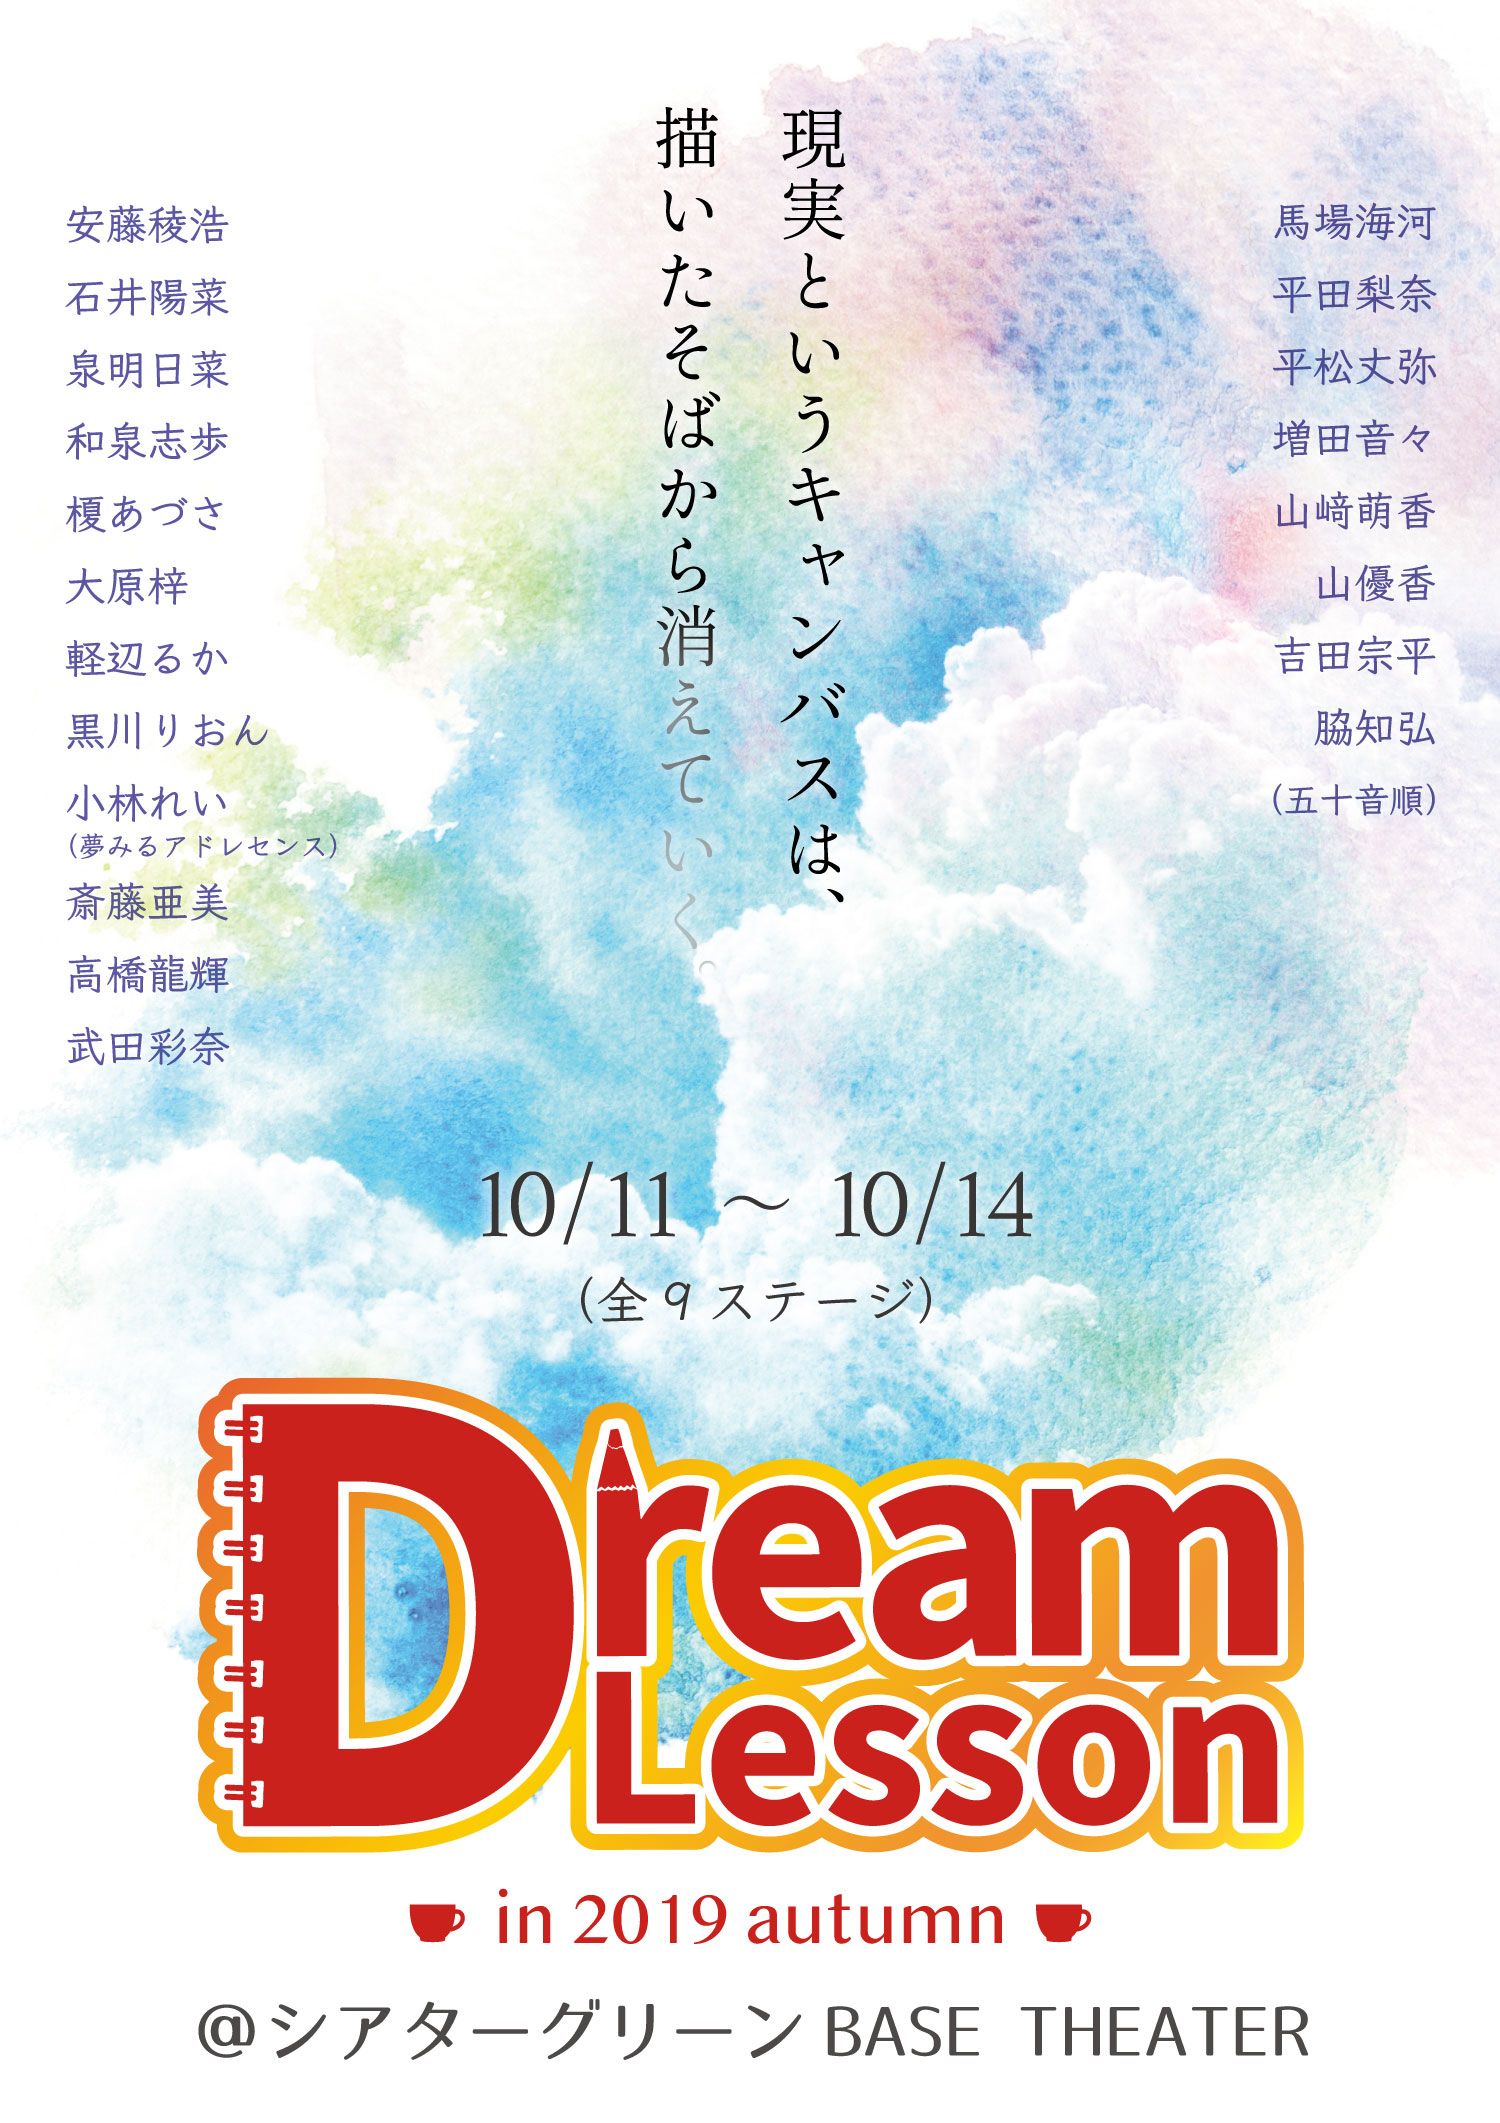 【10月13日 19時】公演 Dream Lesson in2019 autumn